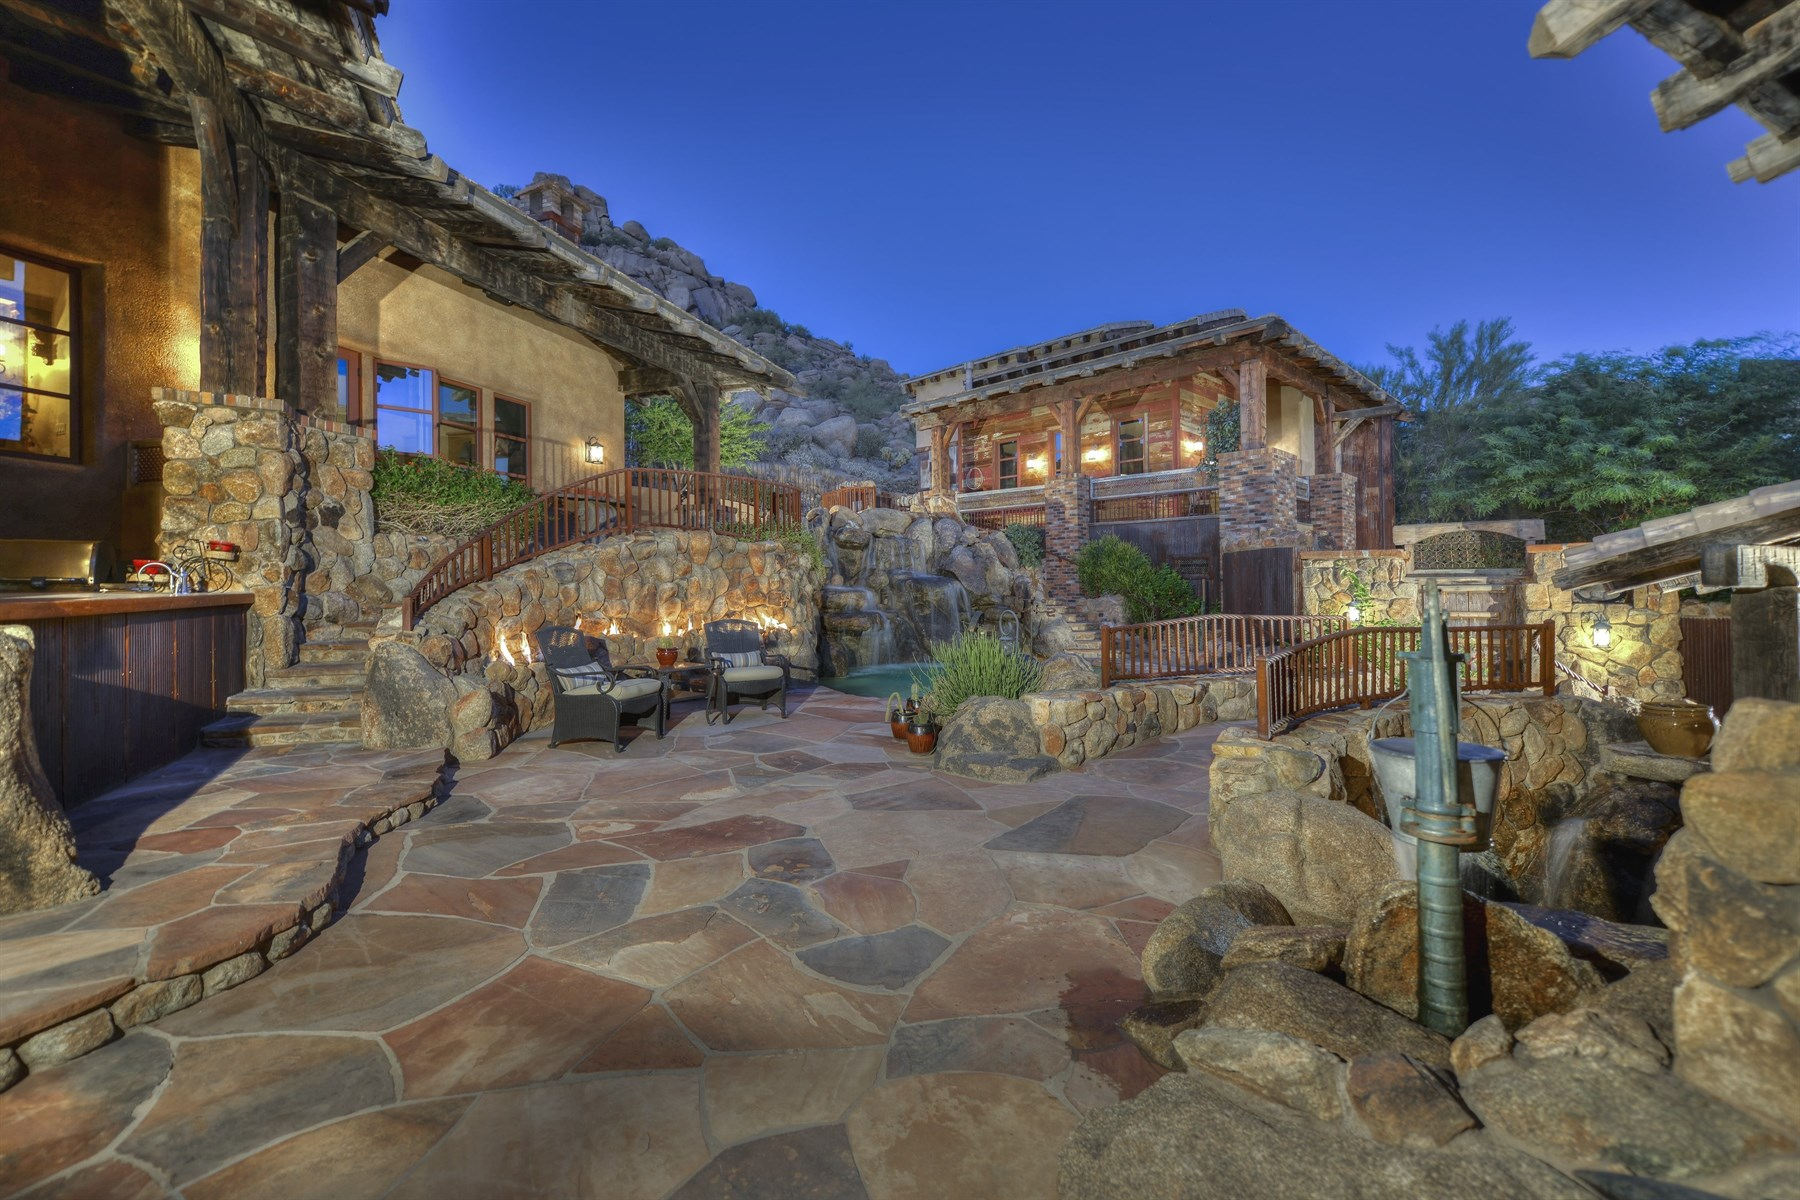 Casa Unifamiliar por un Venta en Elegant and Rustic Arizona-style on an elevated lot in Estancia 27555 N 103rd Way Scottsdale, Arizona, 85262 Estados Unidos